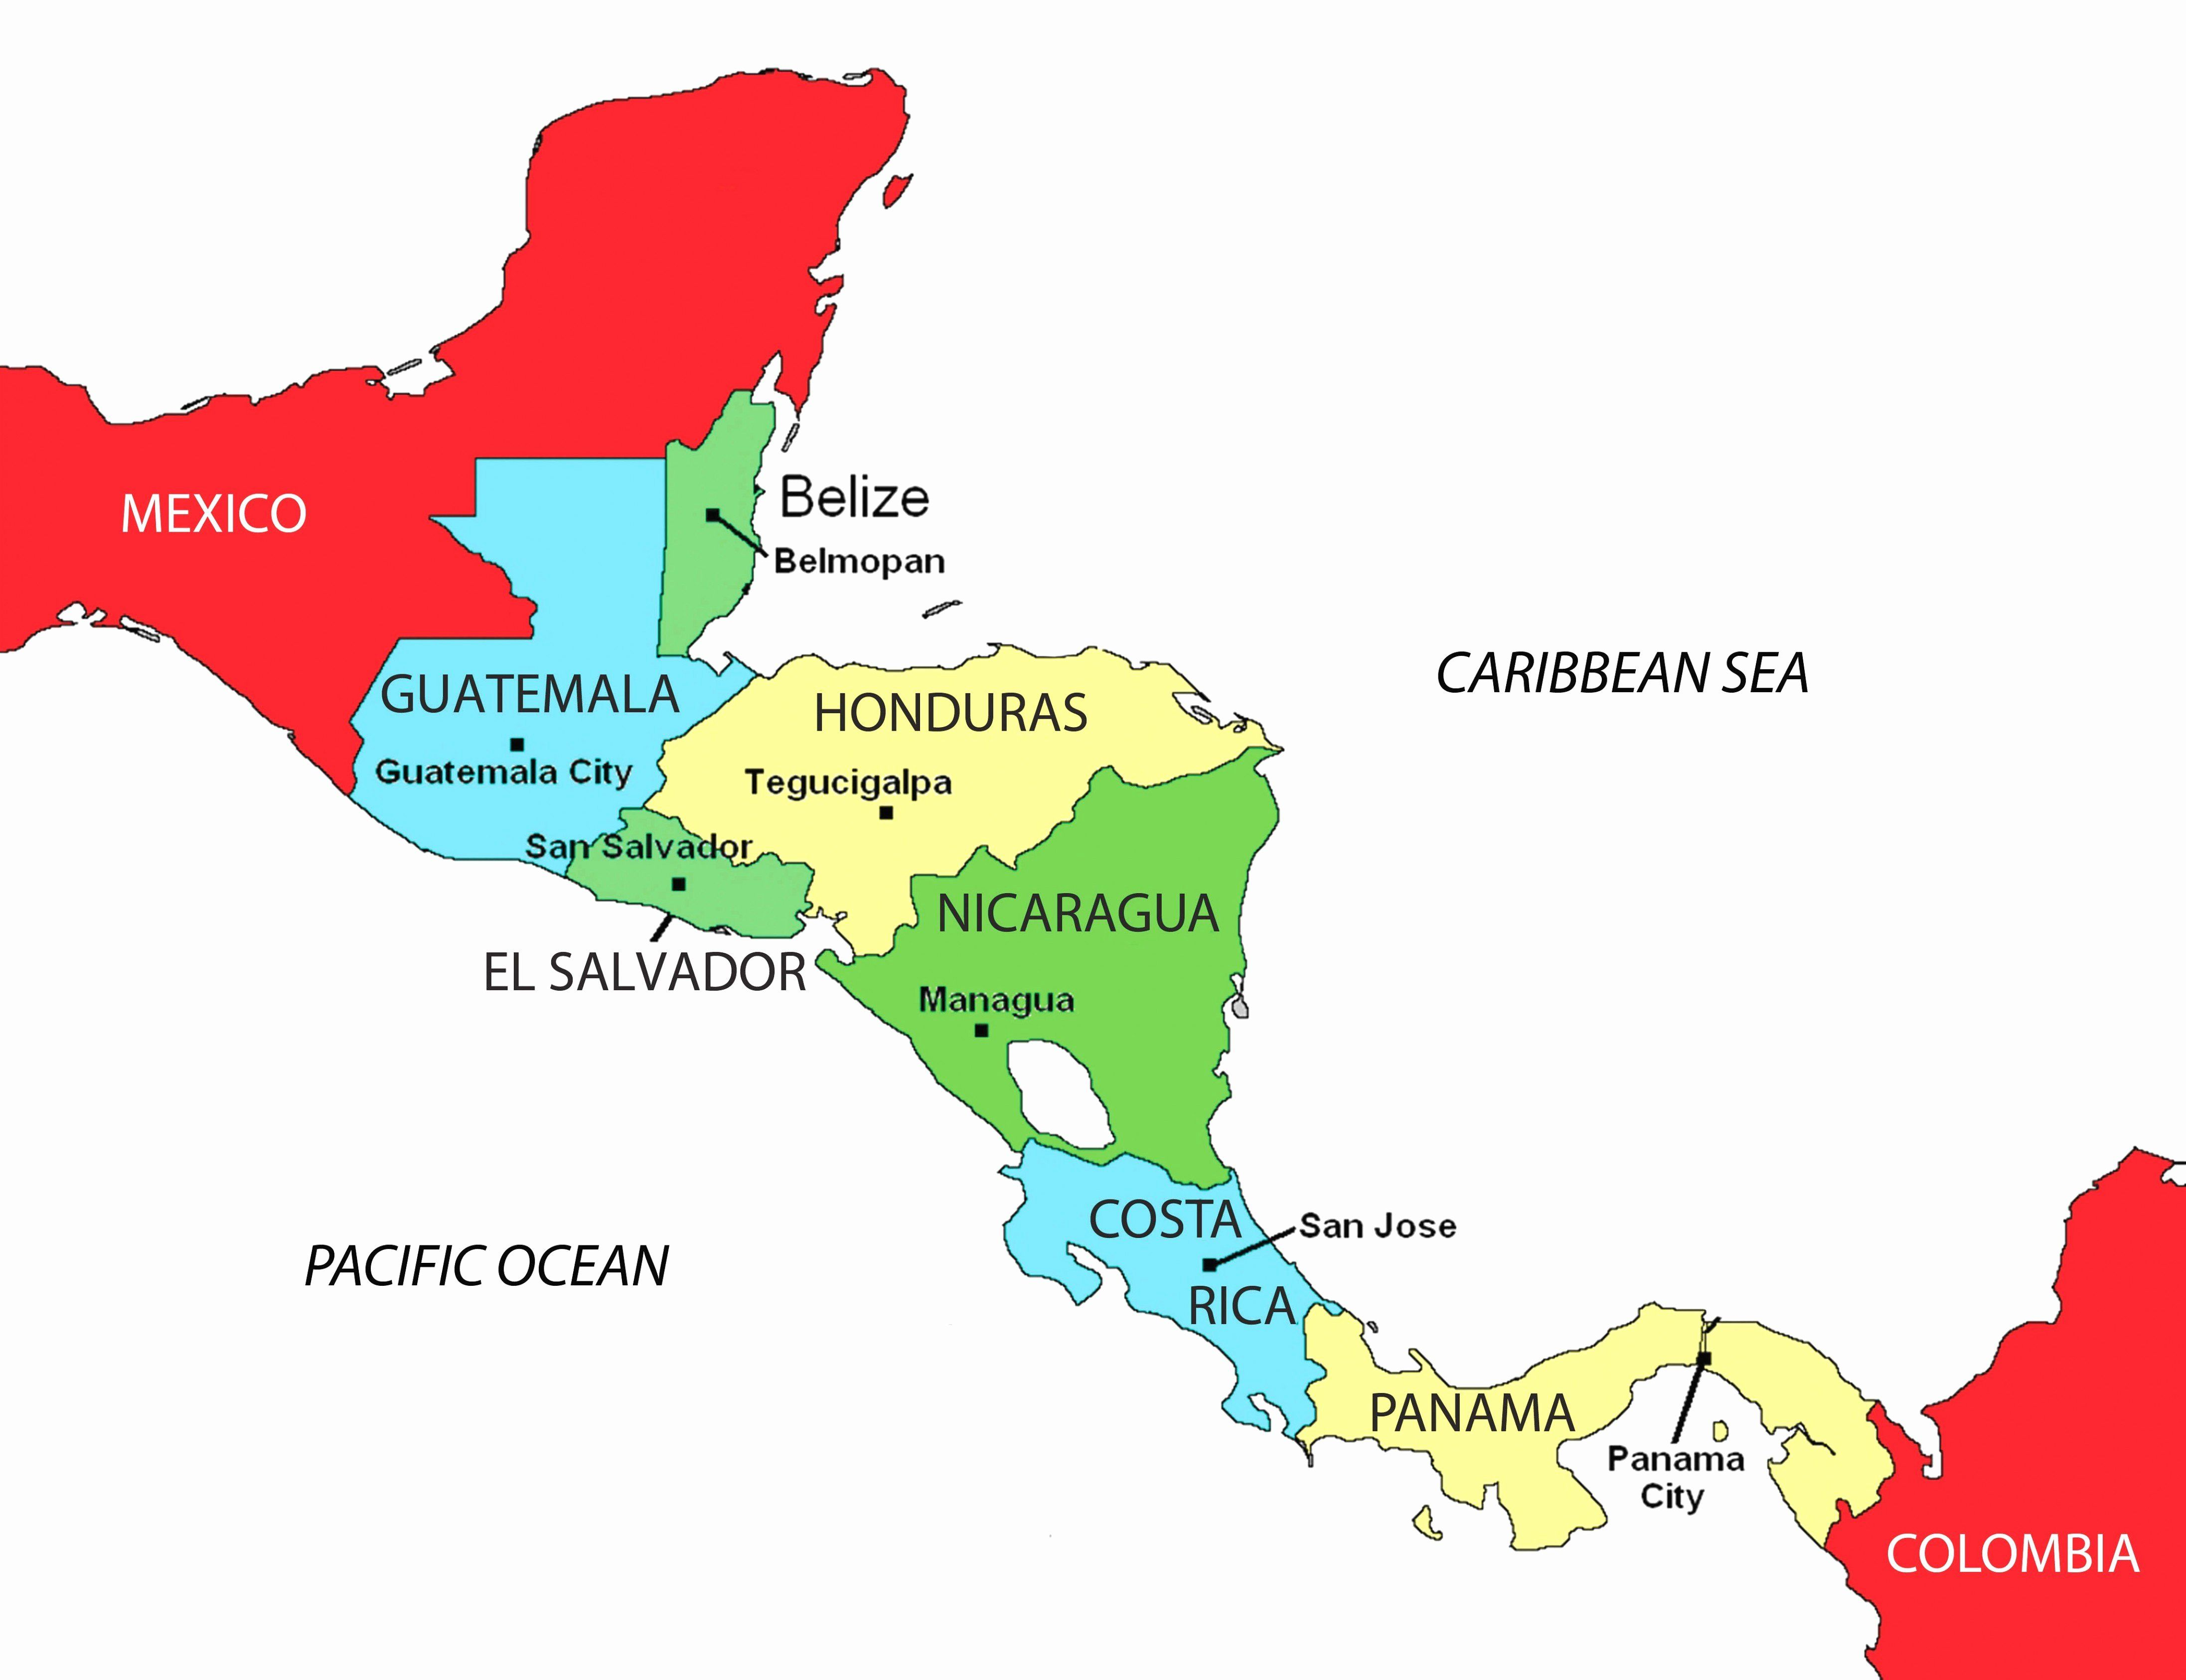 Spanish Speaking Countries Coloring Map In 2020 Central America